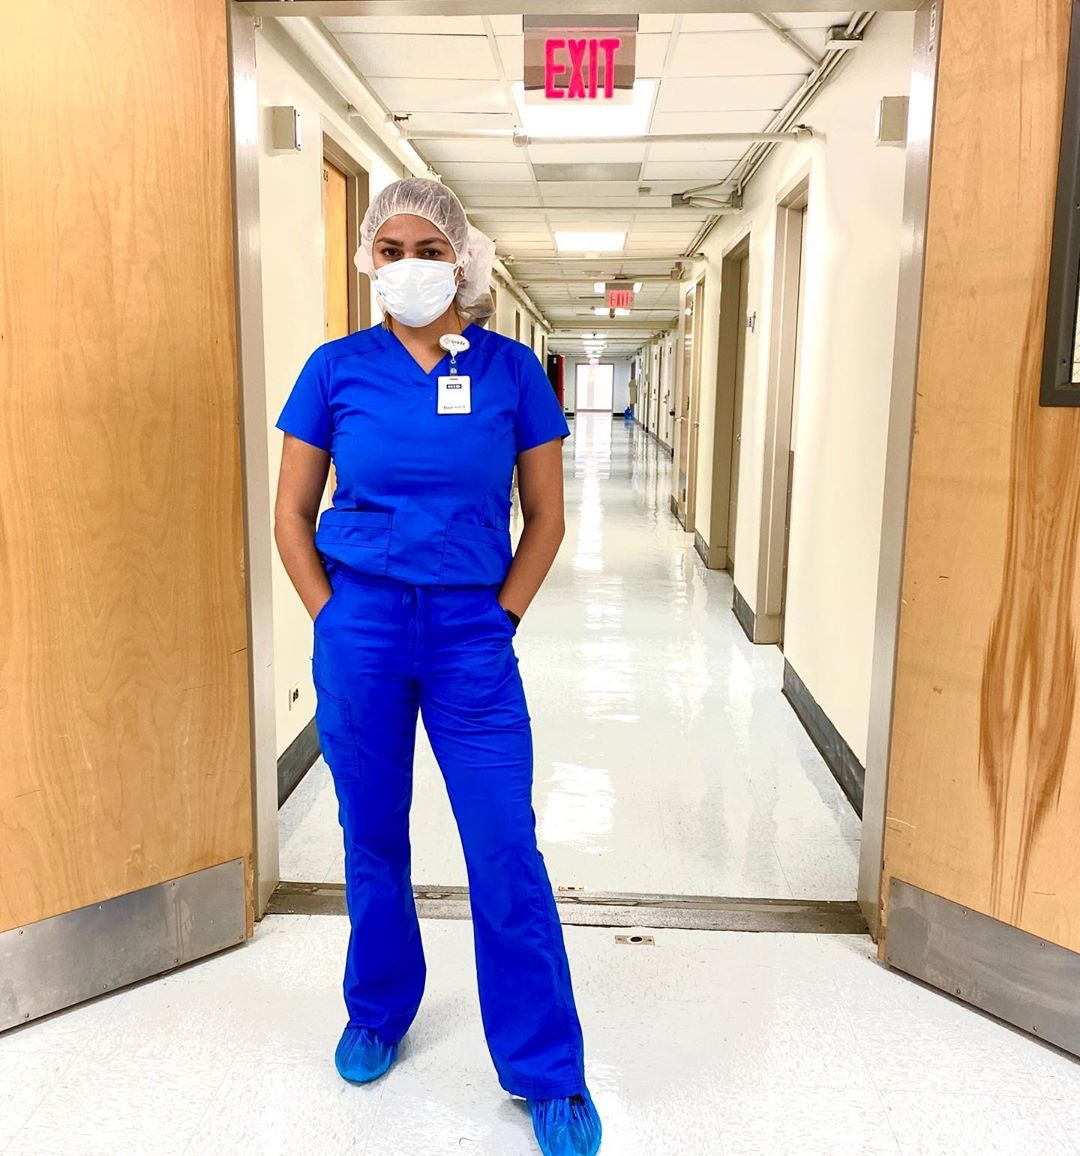 #Repost @la_latinanurse_yivonne --- Week 2 as a resident Nurse has been quite the transition. Not only because everything is different at the hospital with the pandemic, but also facing the real world as an RN is challenging. https://t.co/Qns7LiNrzX